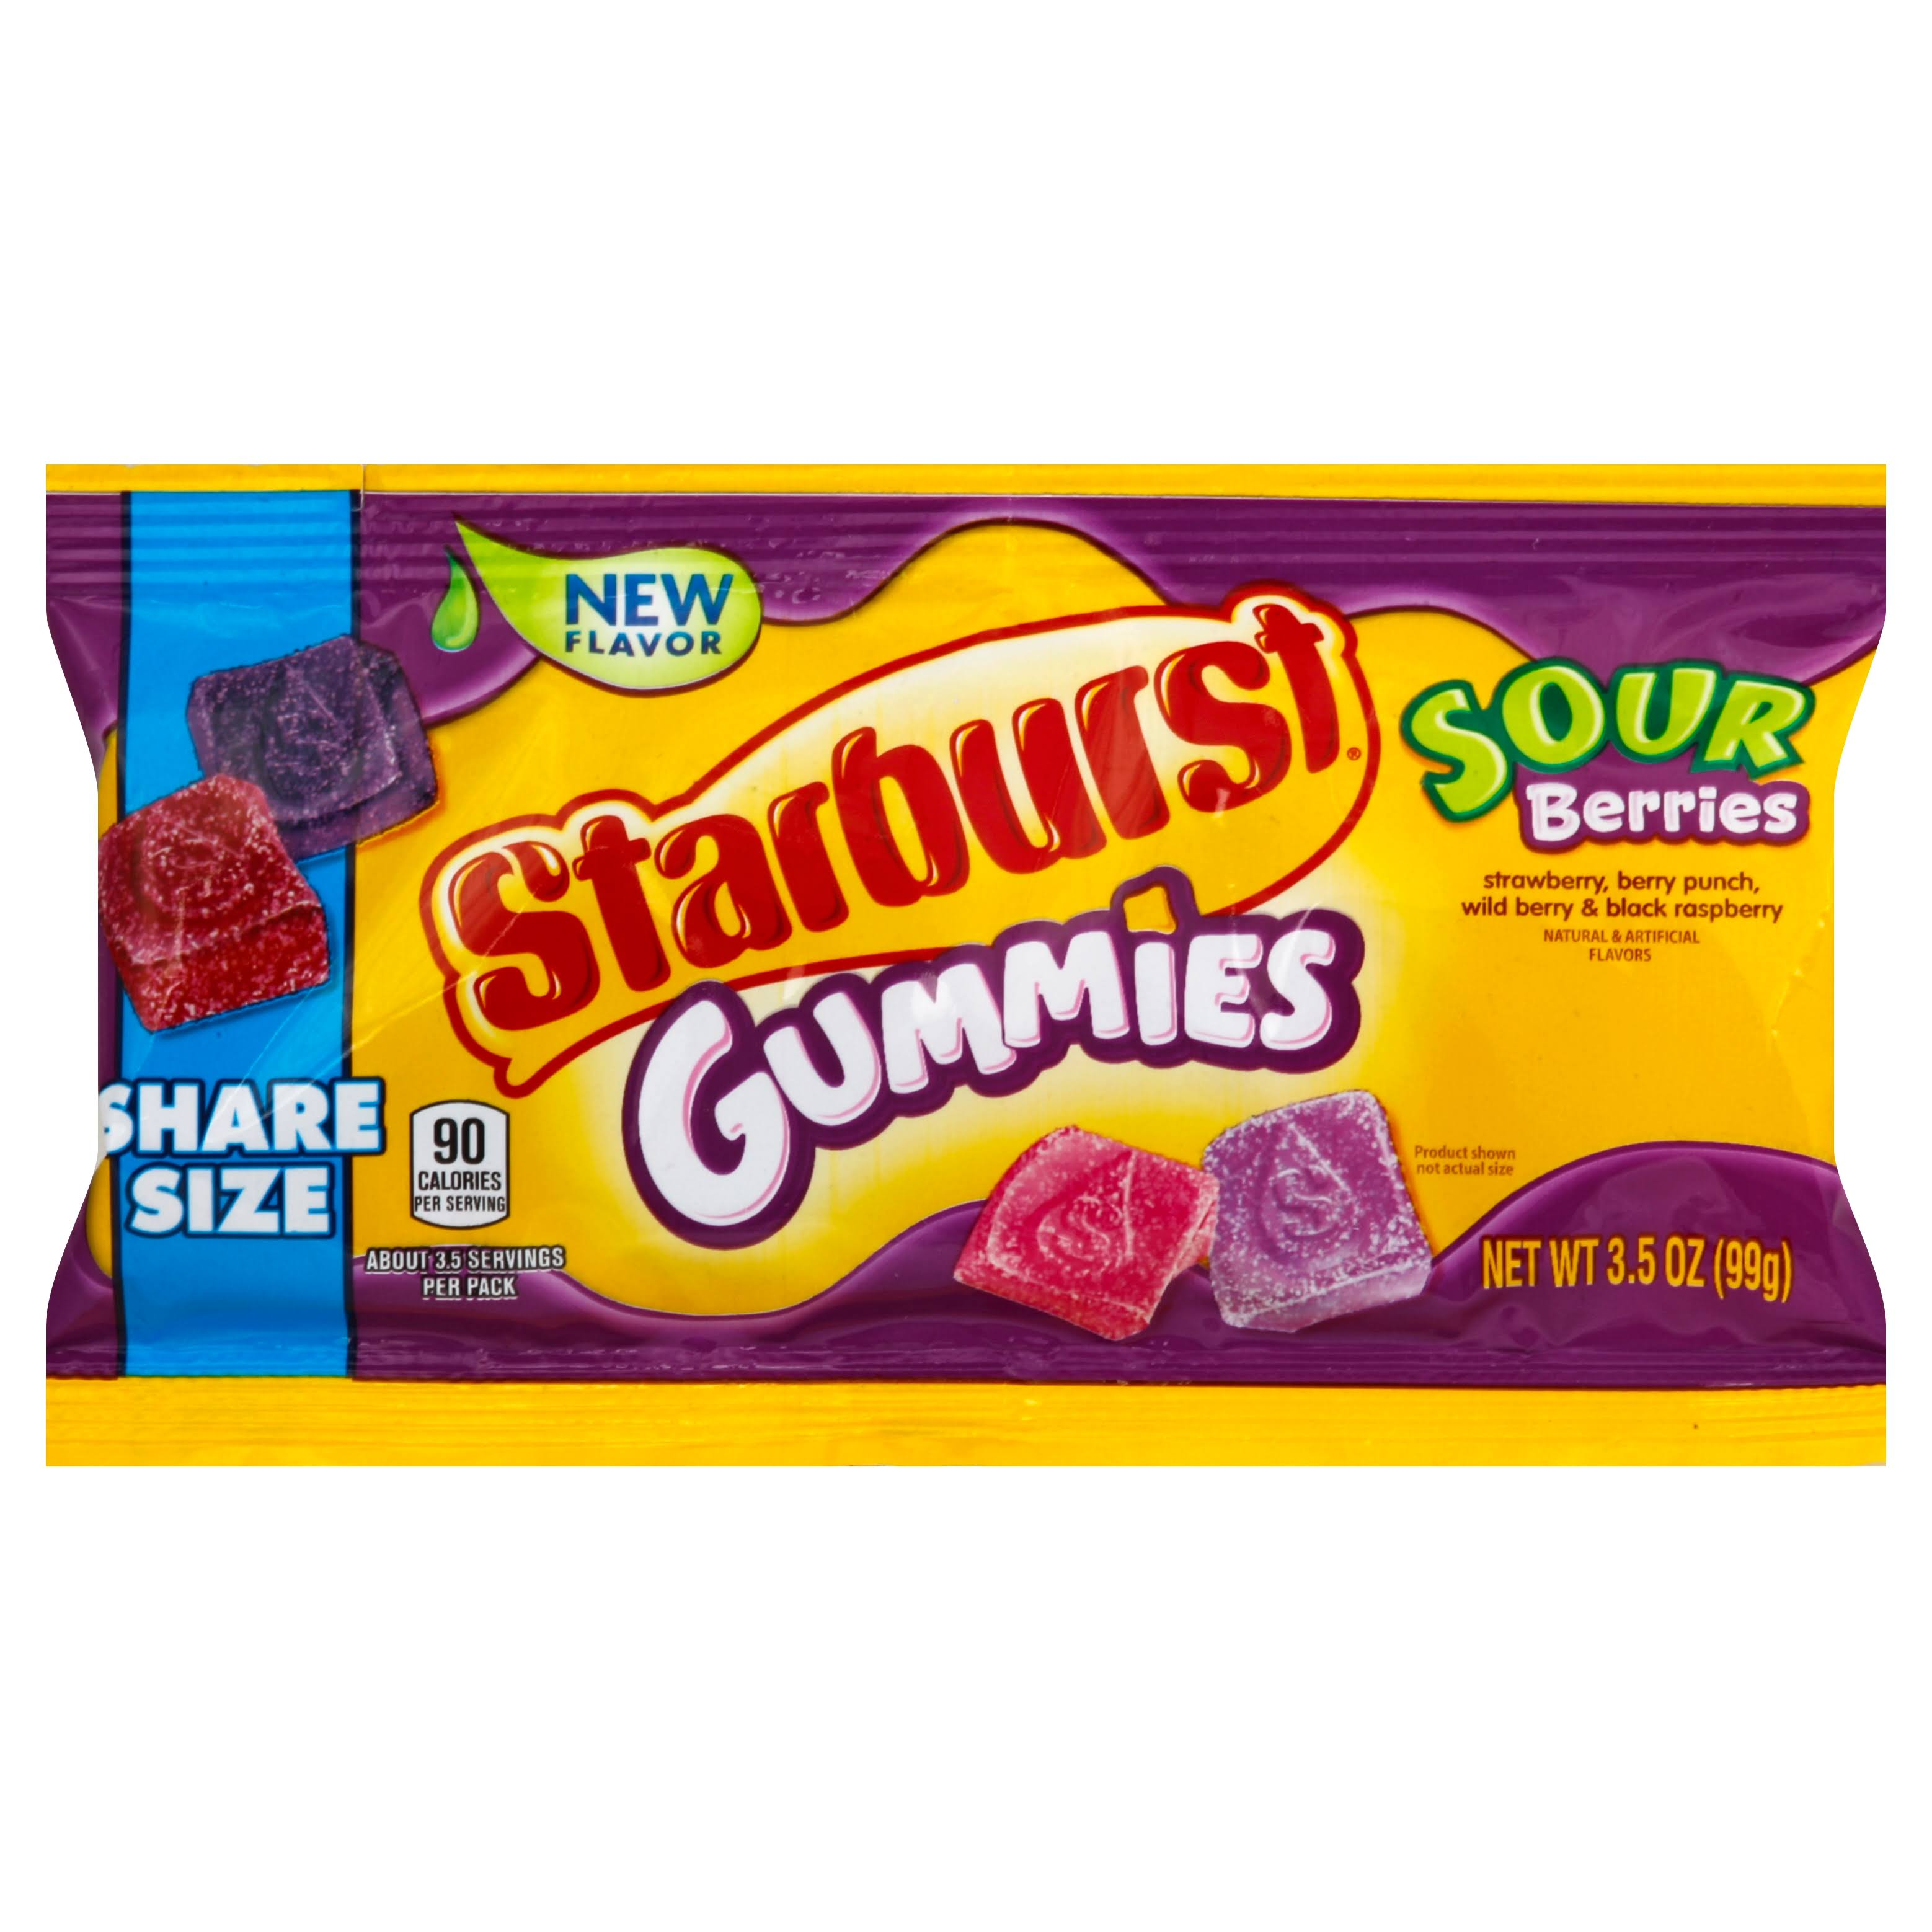 Starburst Gummies, Sour Berries, Share Size - 3.5 oz